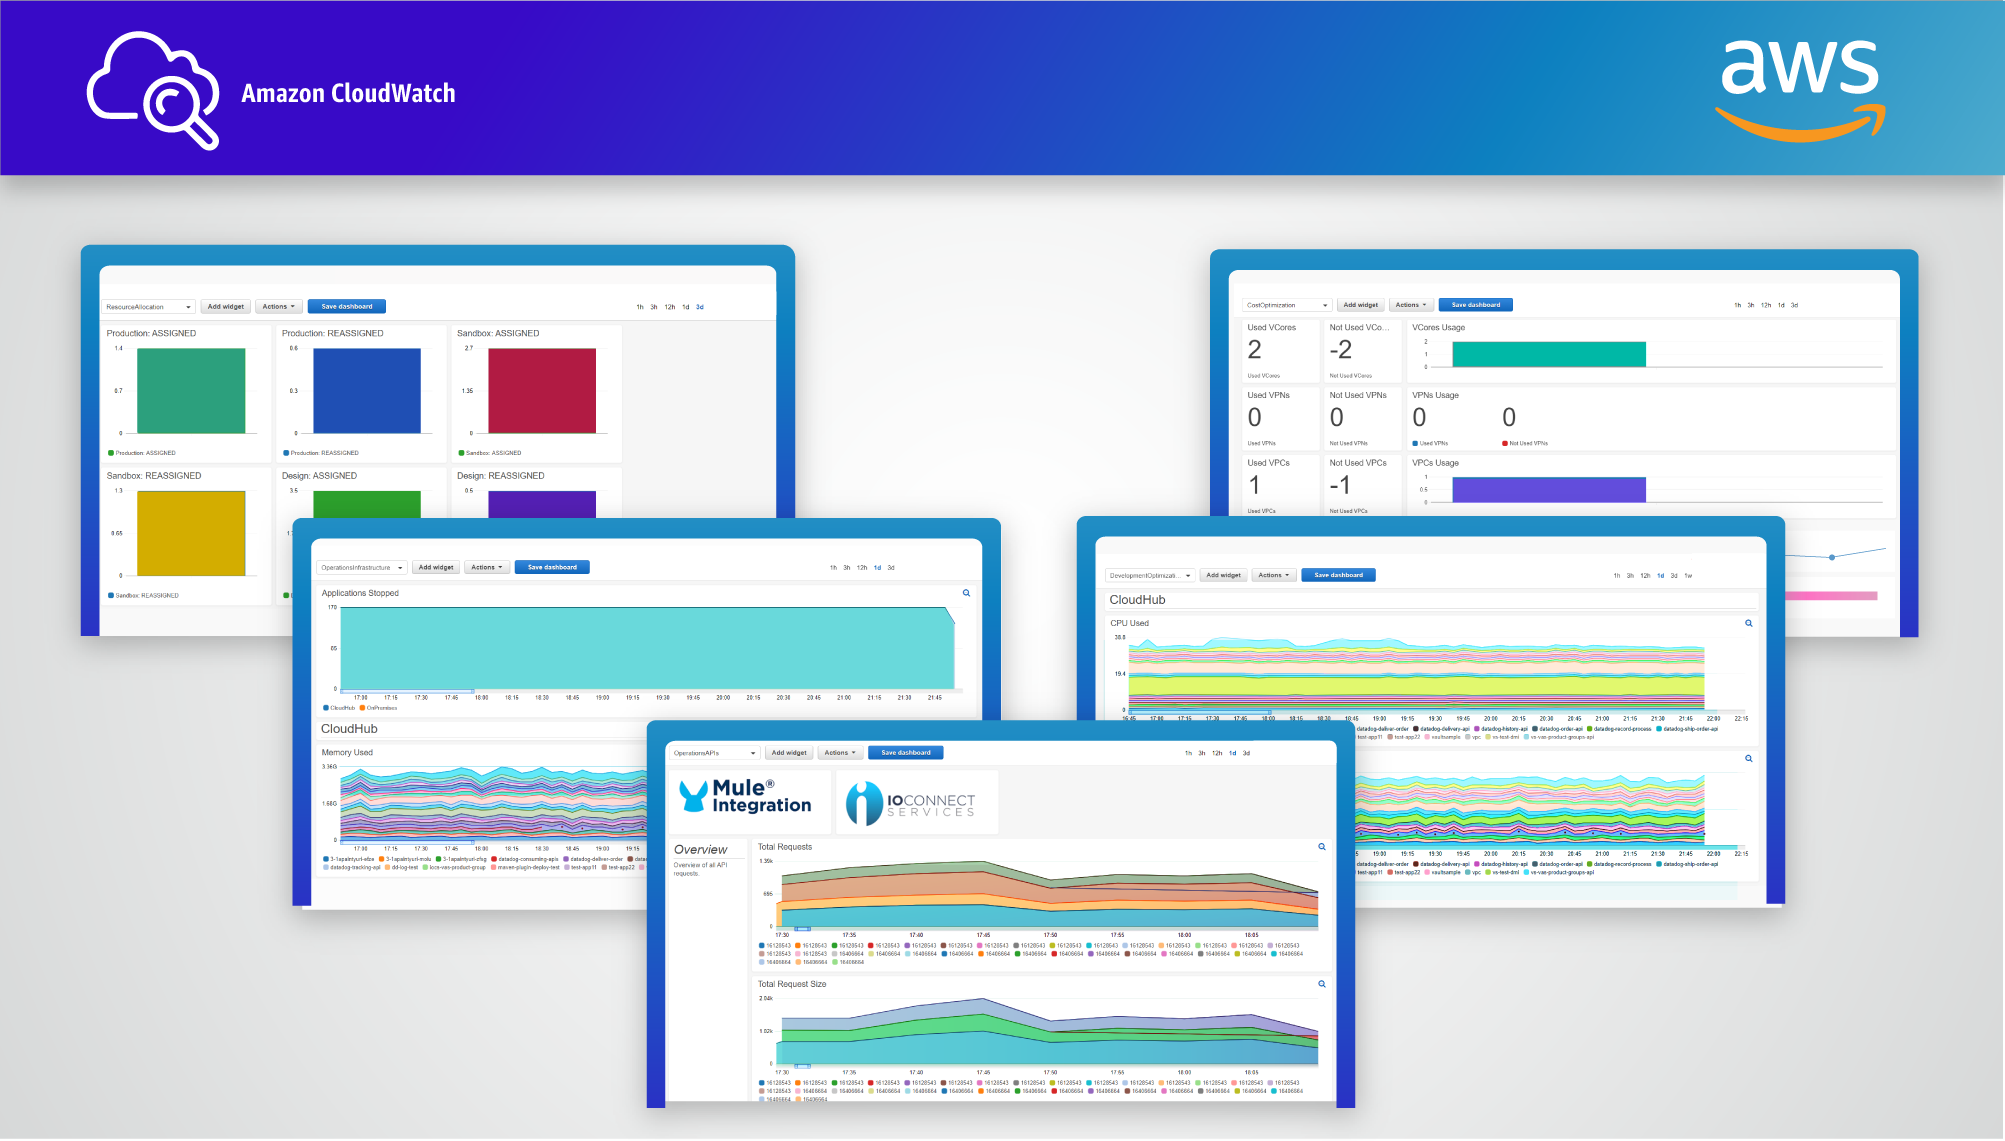 The CloudWatch Mule Integration dashboards monitor Mule applications with CloudWatch